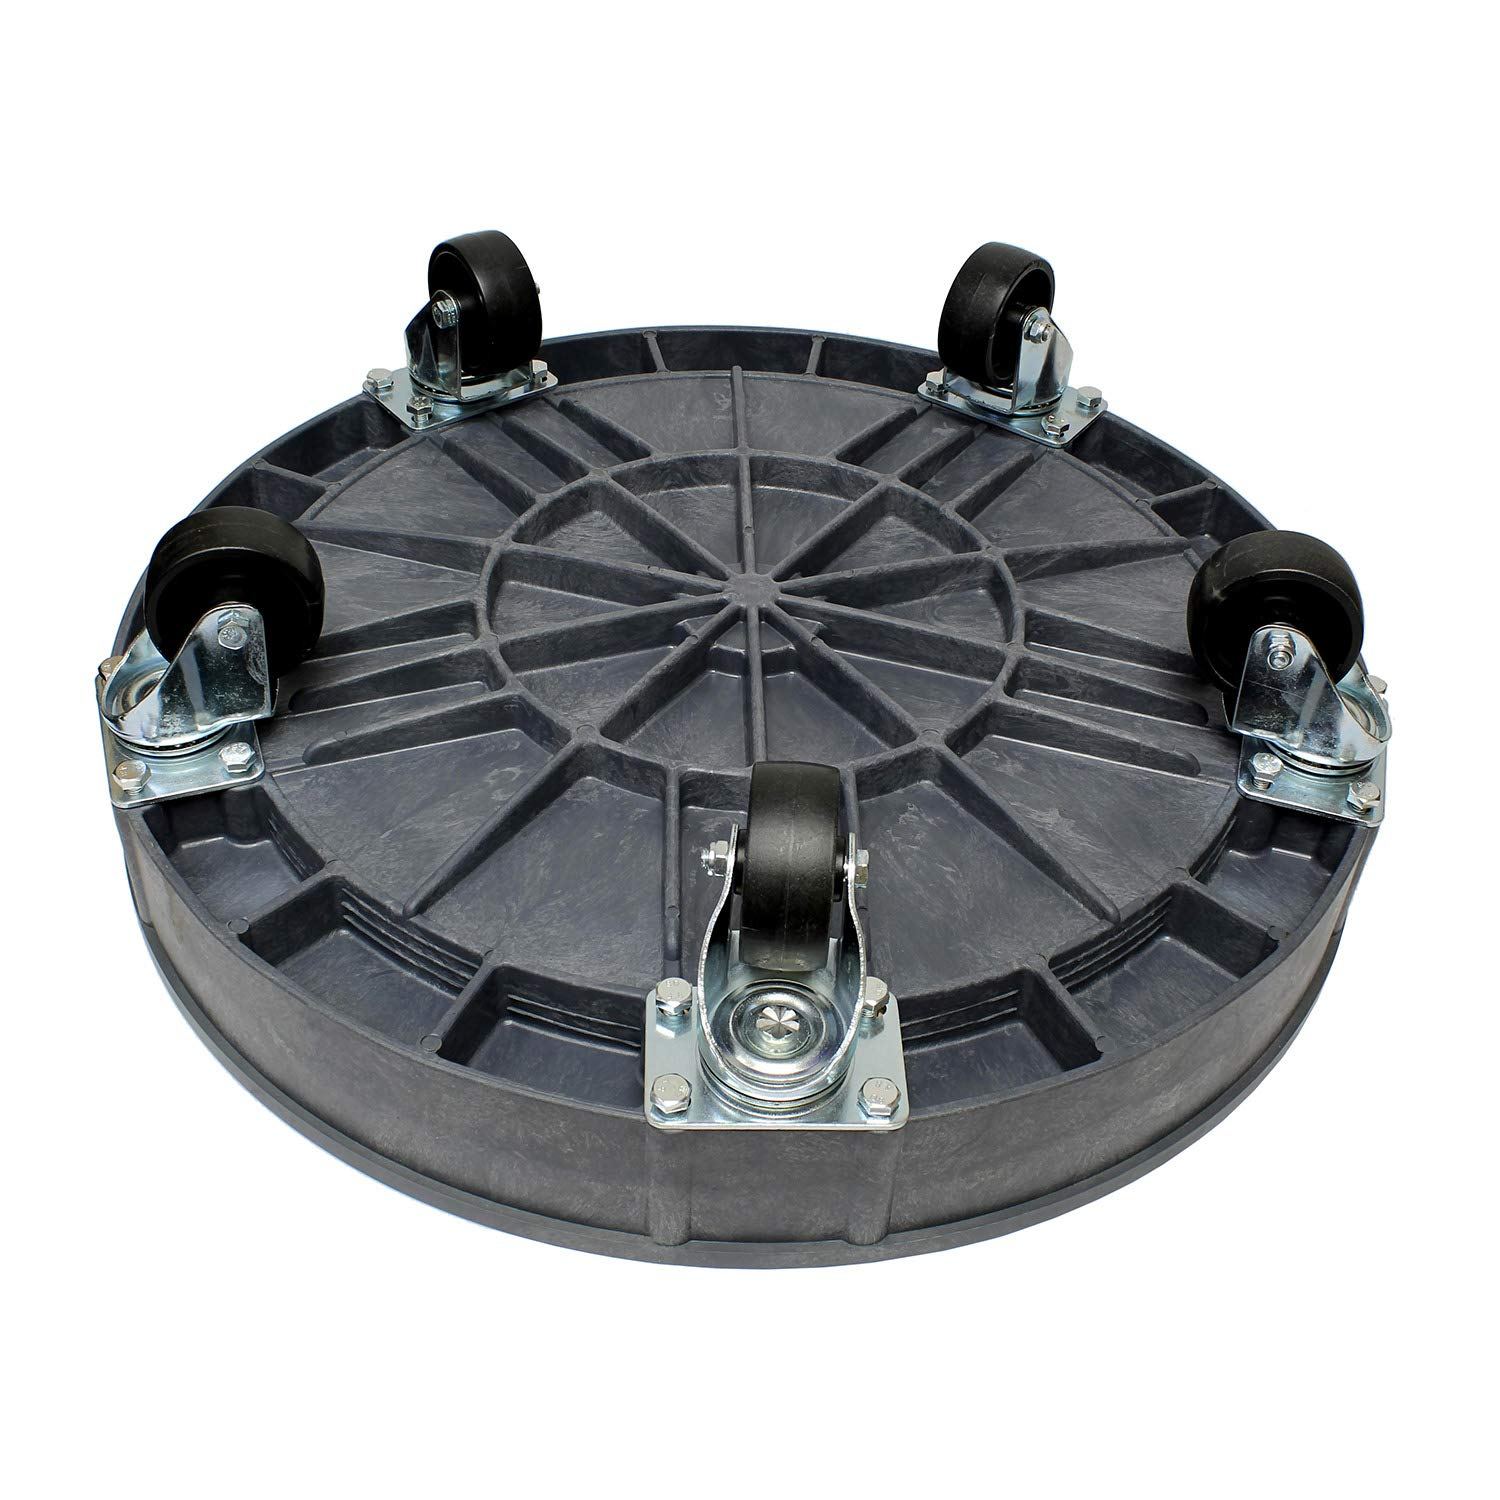 BISupply | Plastic 30 55 Gal Drum Dolly Barrel Cart Barrel Dolly for 55 Gallon Drum Dolly 55 Gallon 30 Gallon Drum Dolly by BISupply (Image #3)